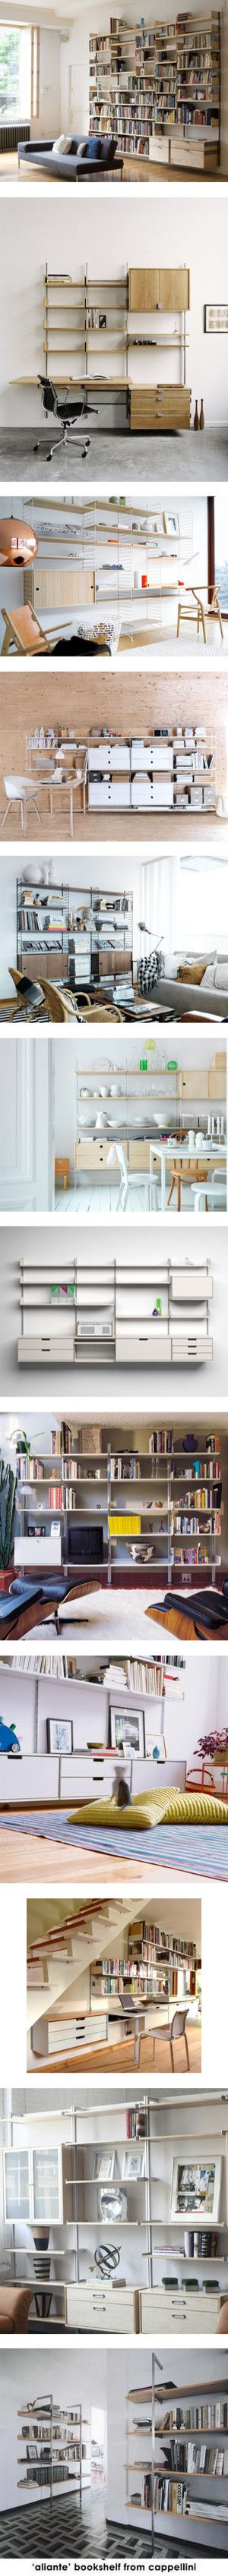 wall shelving systems by joclin on Polyvore featuring home, furniture, storage & shelves, bookcases, shelf furniture, modular shelves, modular bookcase, shelf units, modular shelving systems and modular bookshelves